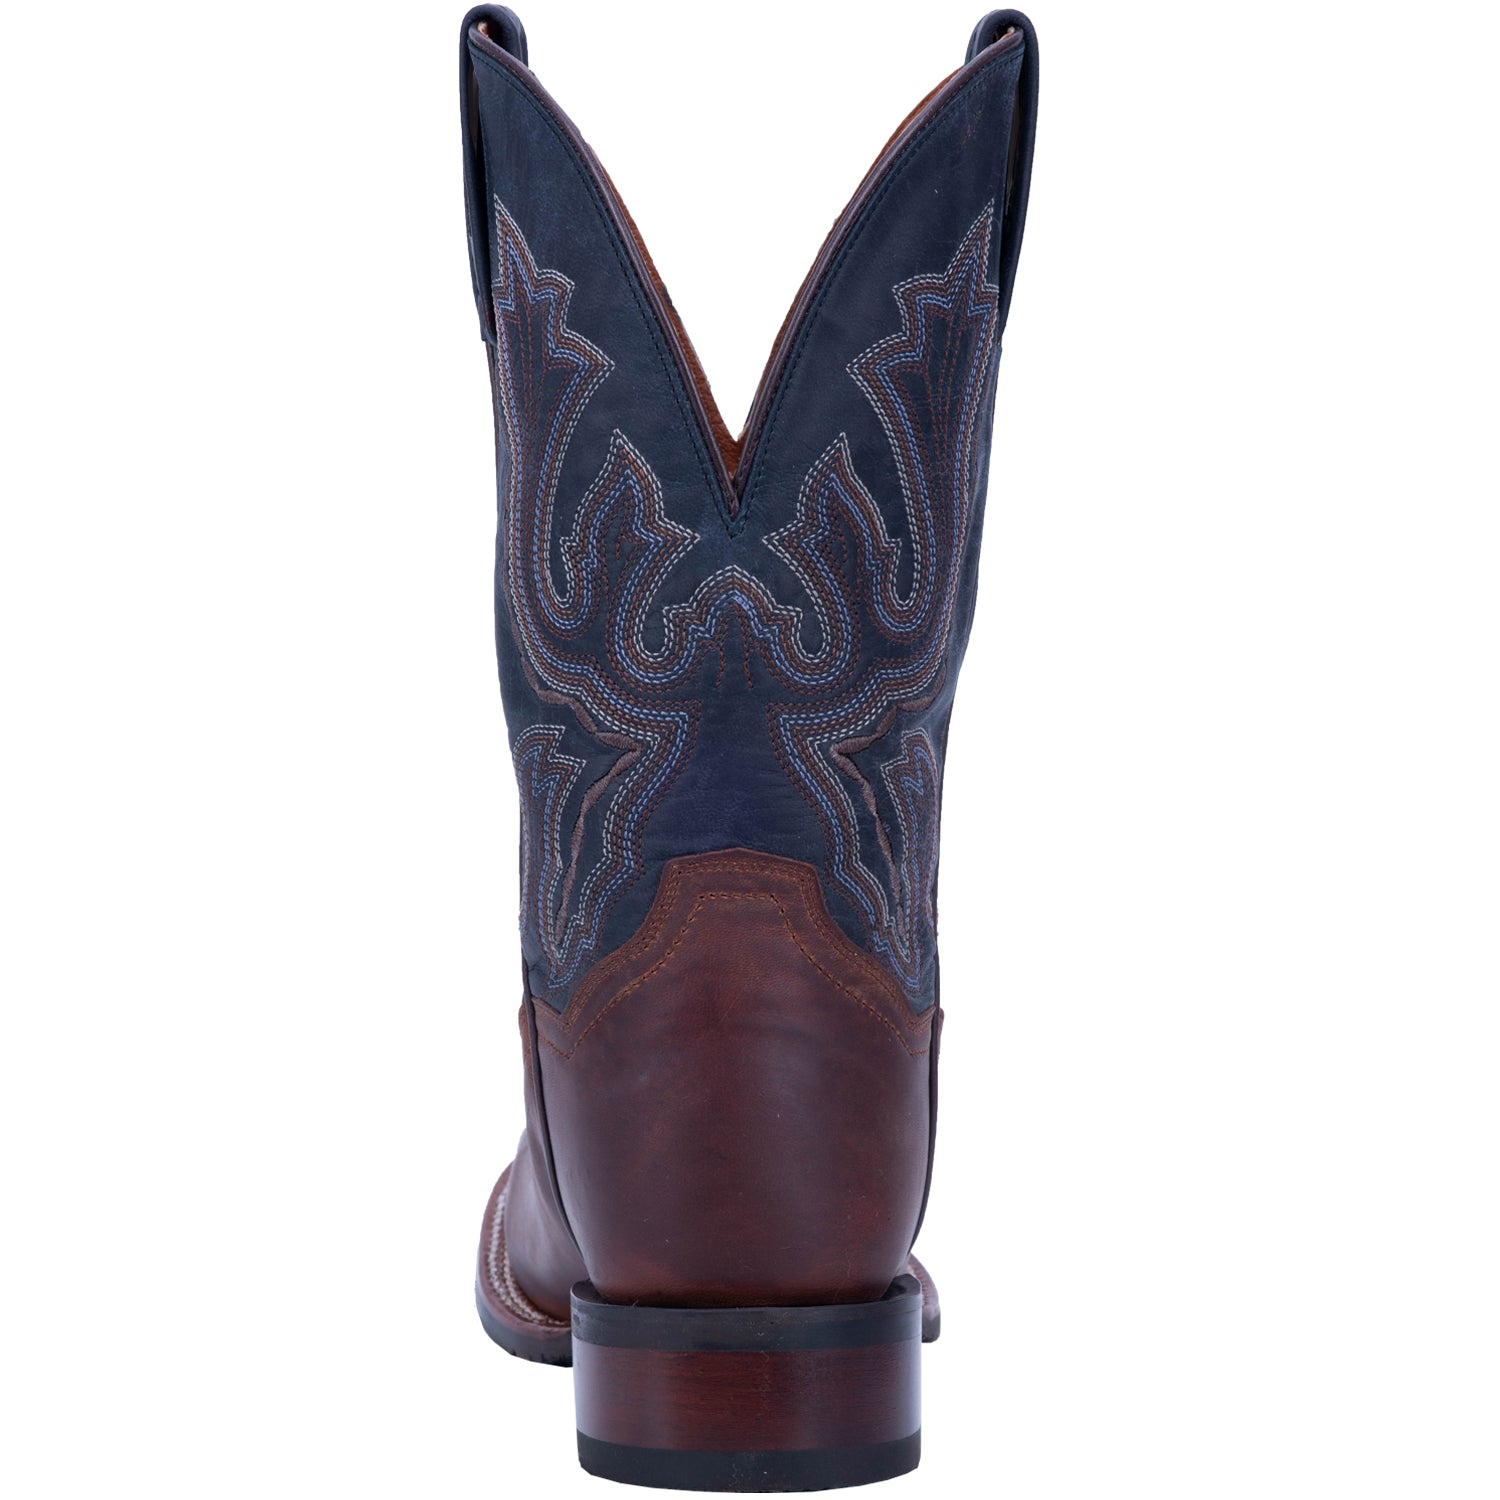 WINSLOW LEATHER BOOT 13289286271018